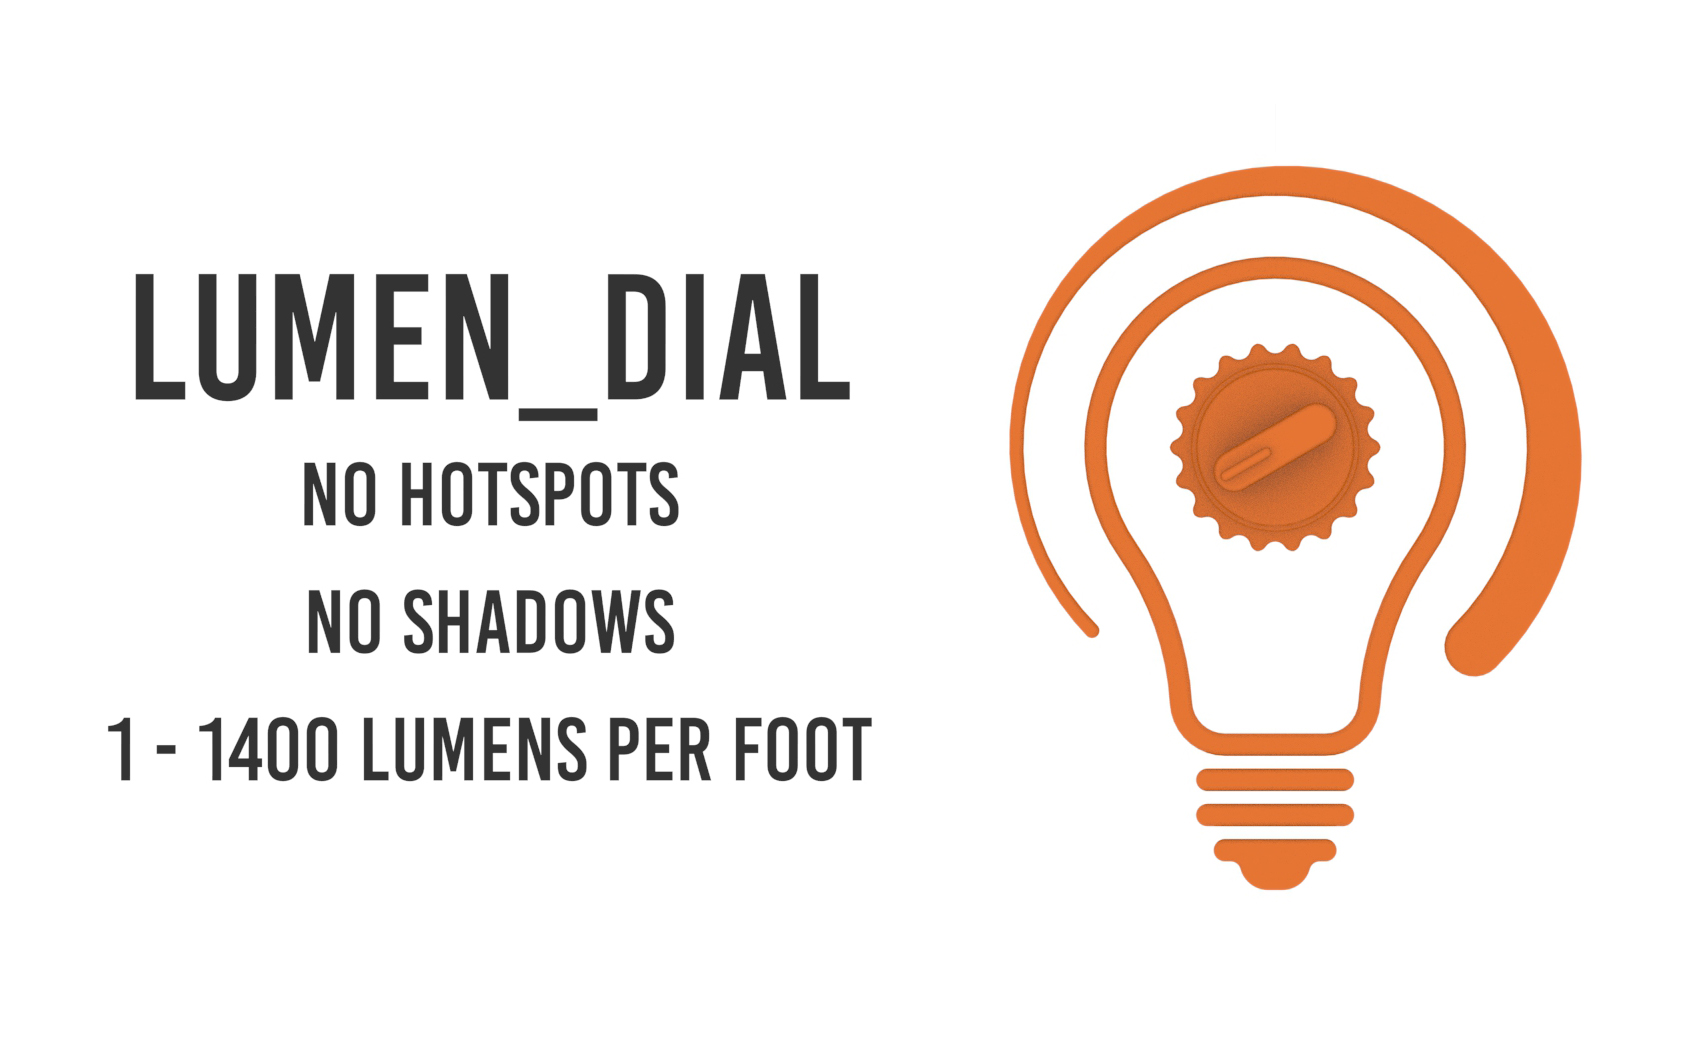 Scout's propriety light engine can be dialed into any lumen value or wattage up to 1,400 lumens / 12 Watts. Since nothing changes on the board Scout can ensure you'll never have a visible hotspot or shadow.